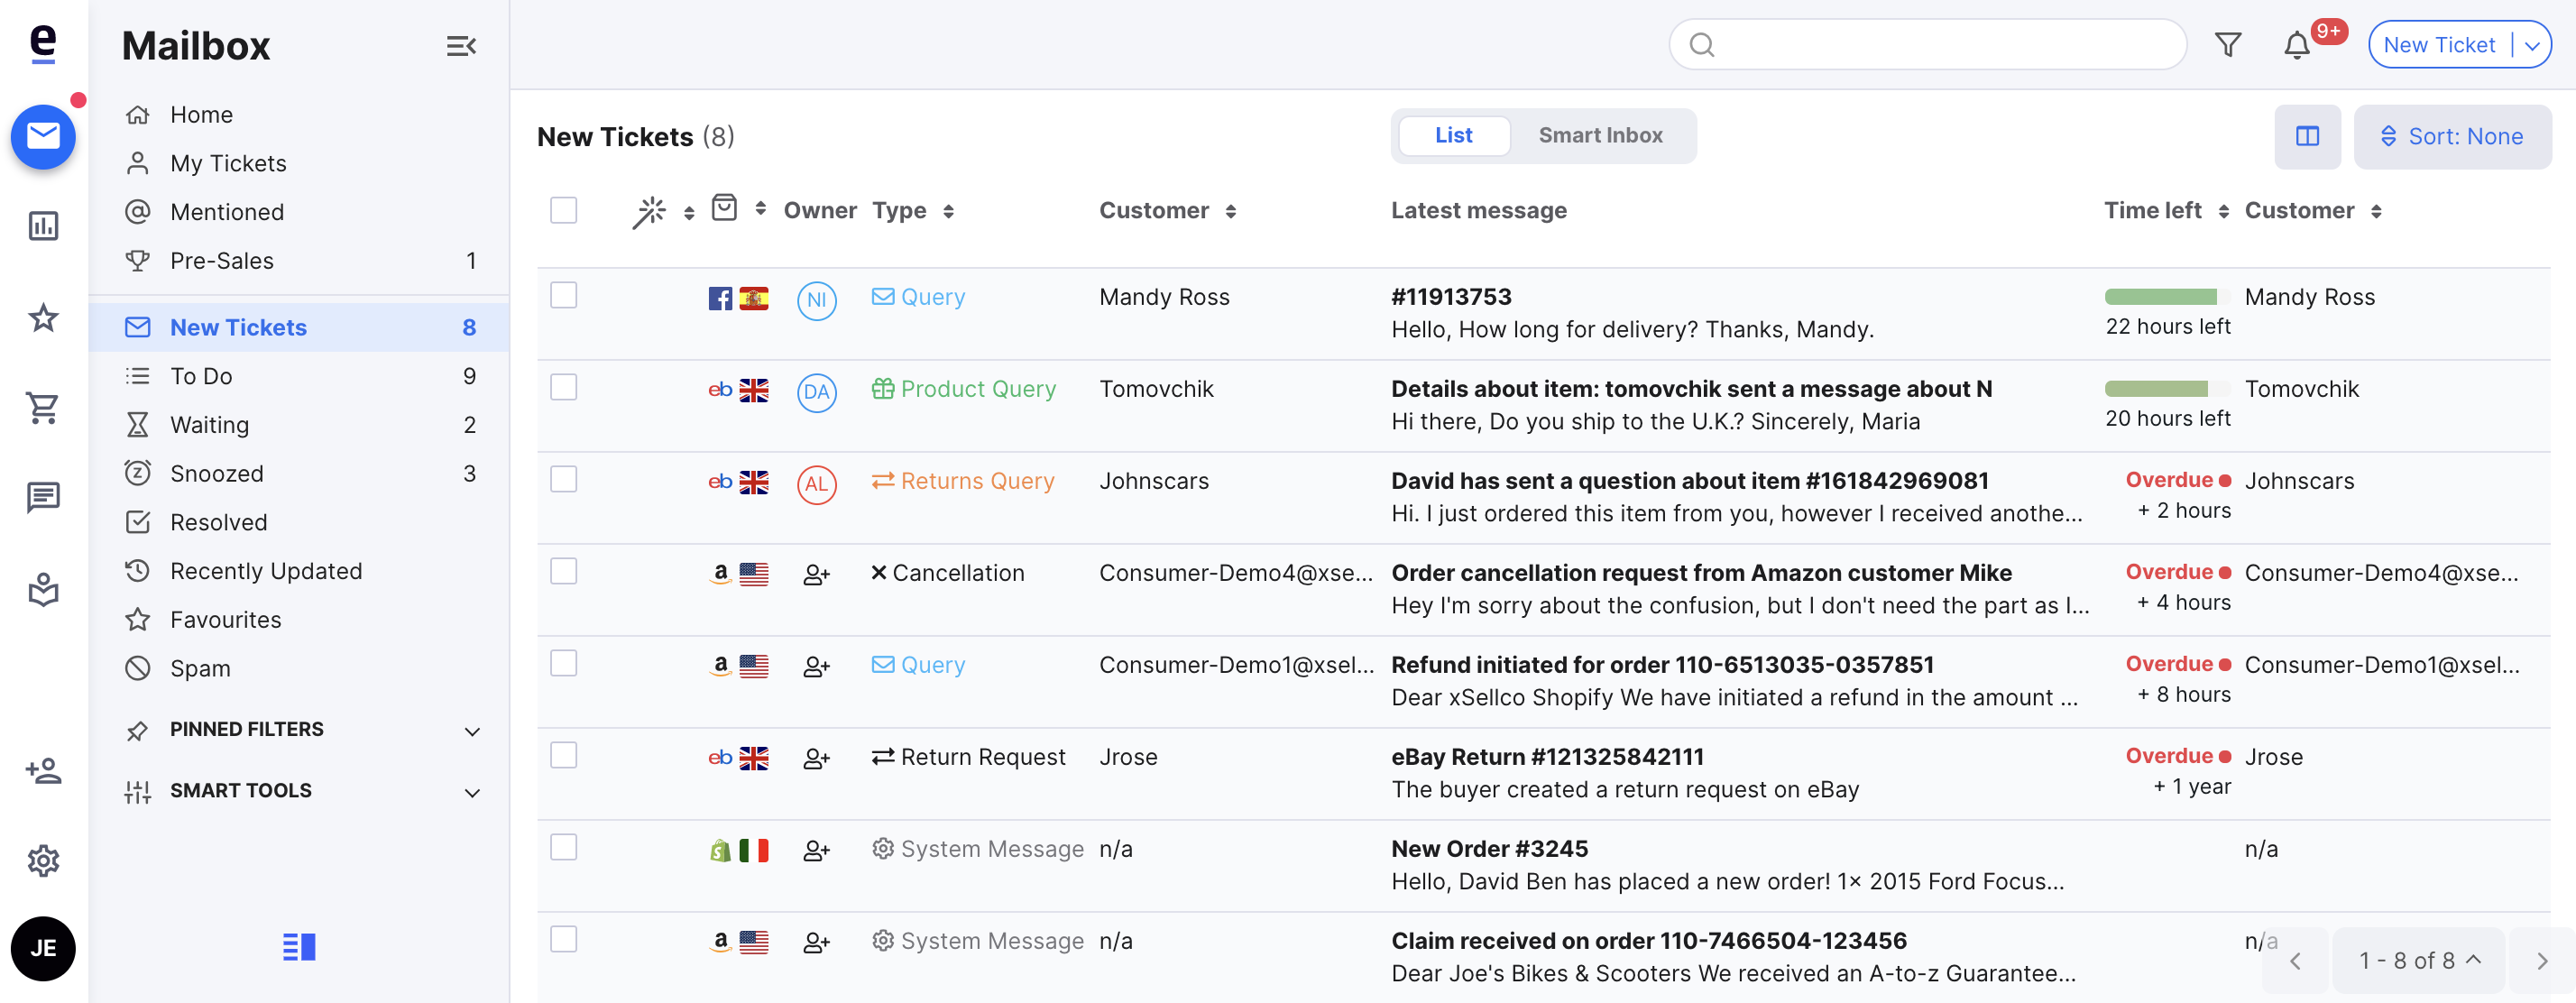 The New Messages part of your Mailbox